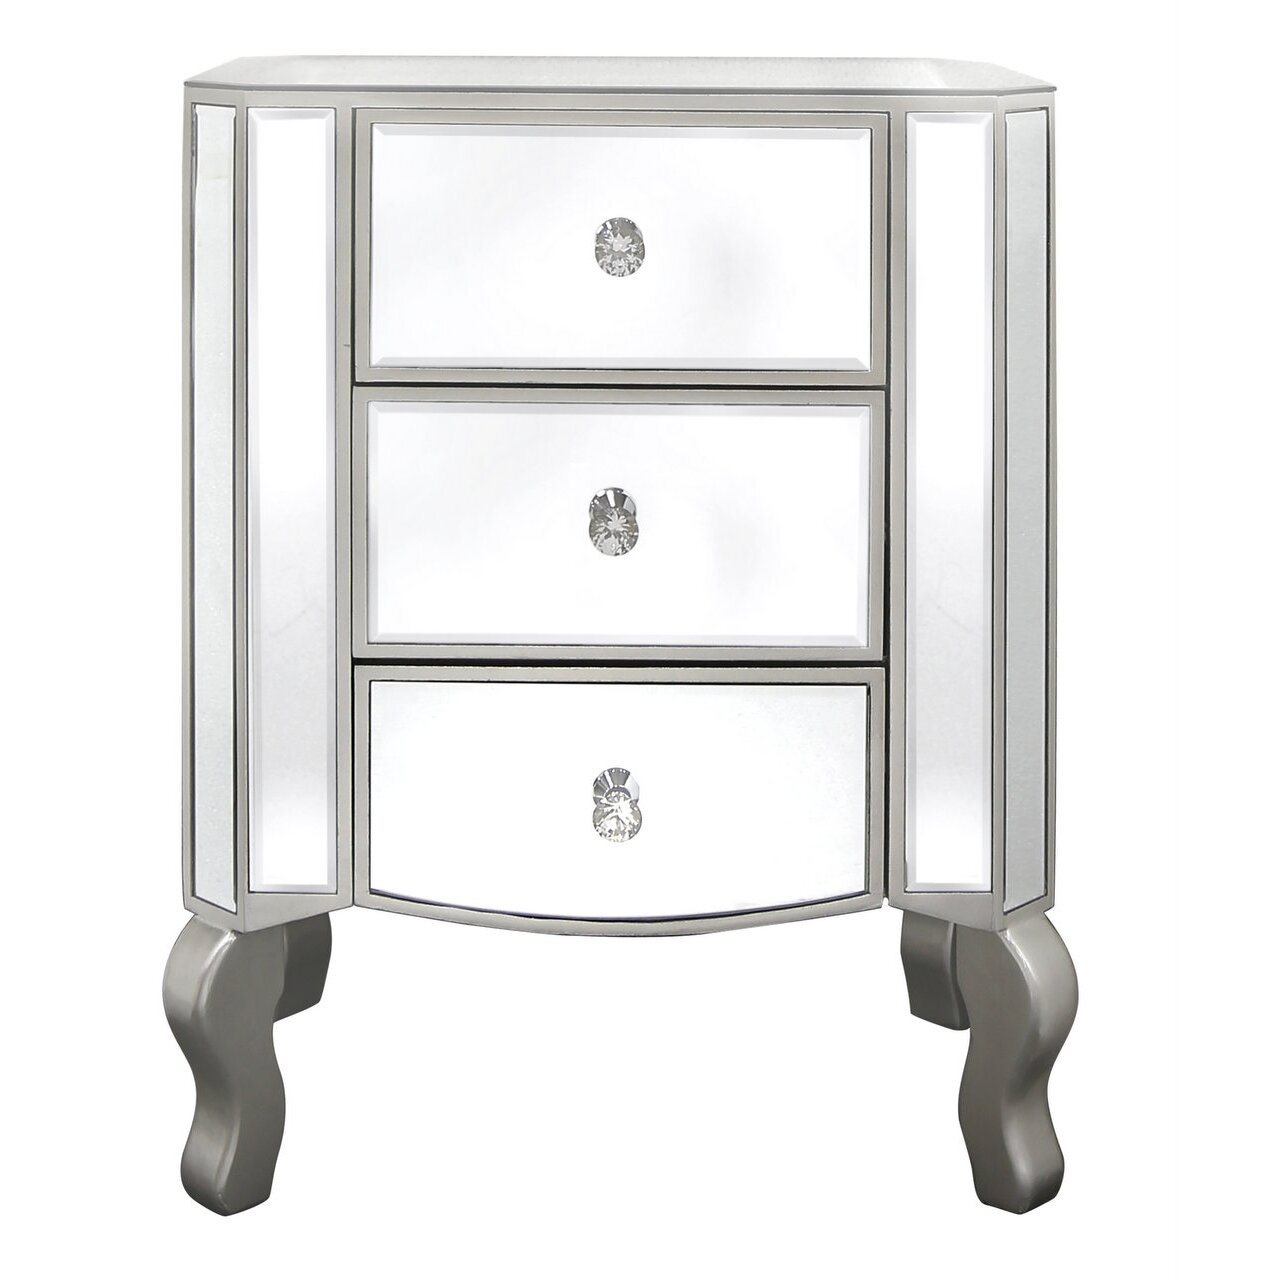 castleton home 3 drawer bedside table reviews wayfair. Black Bedroom Furniture Sets. Home Design Ideas